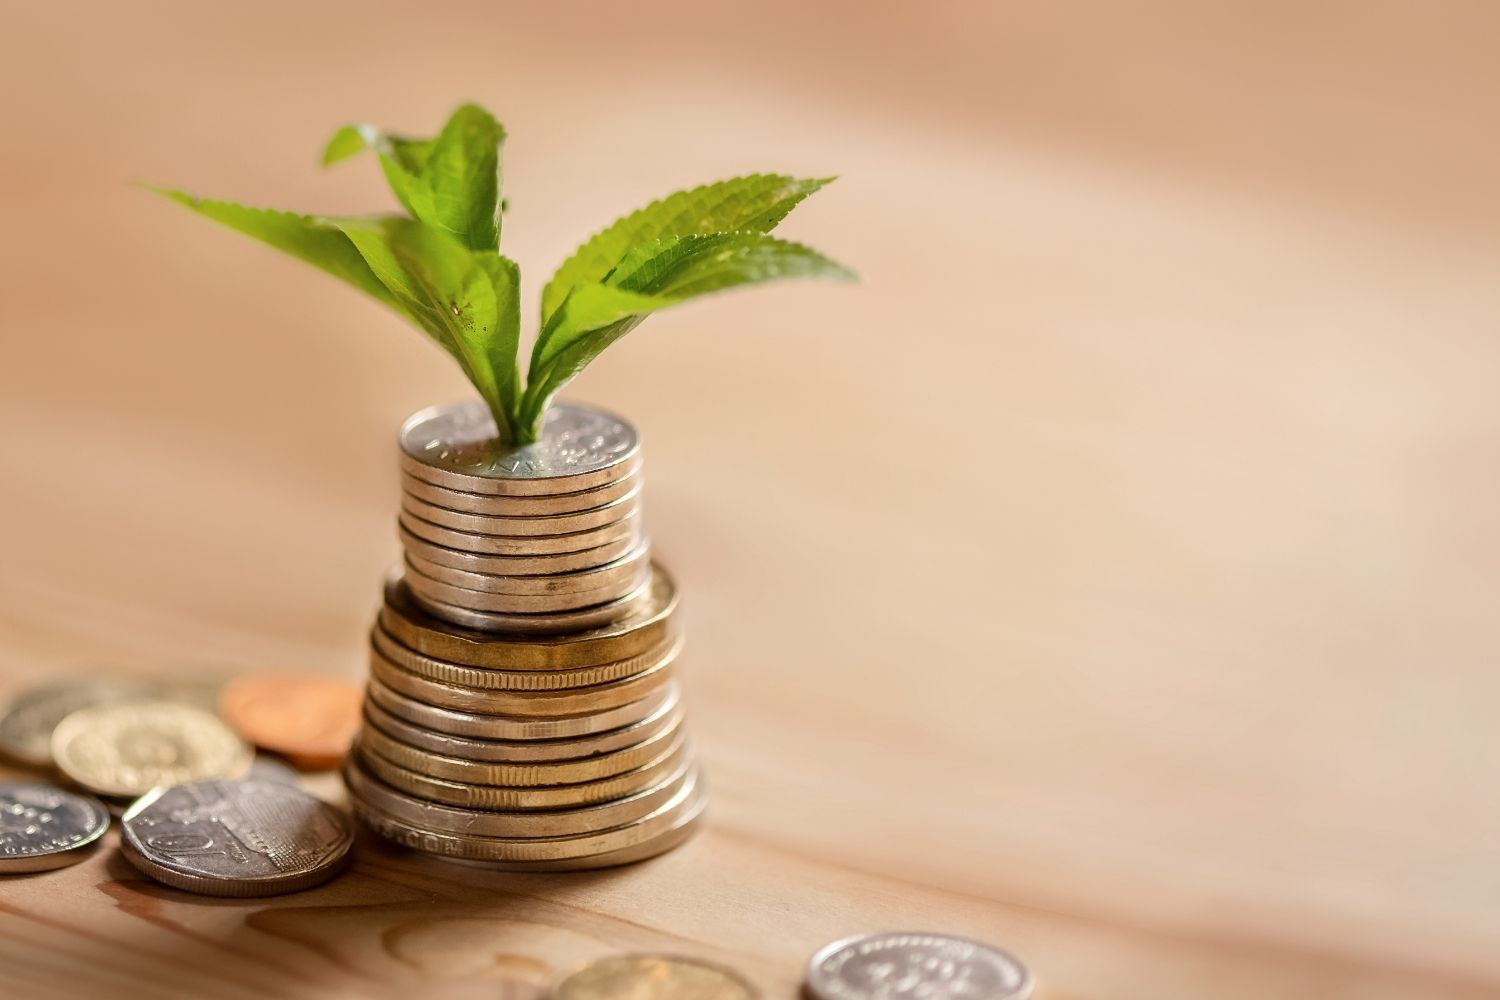 The Passive Investing Blueprint: Build Wealth Passively